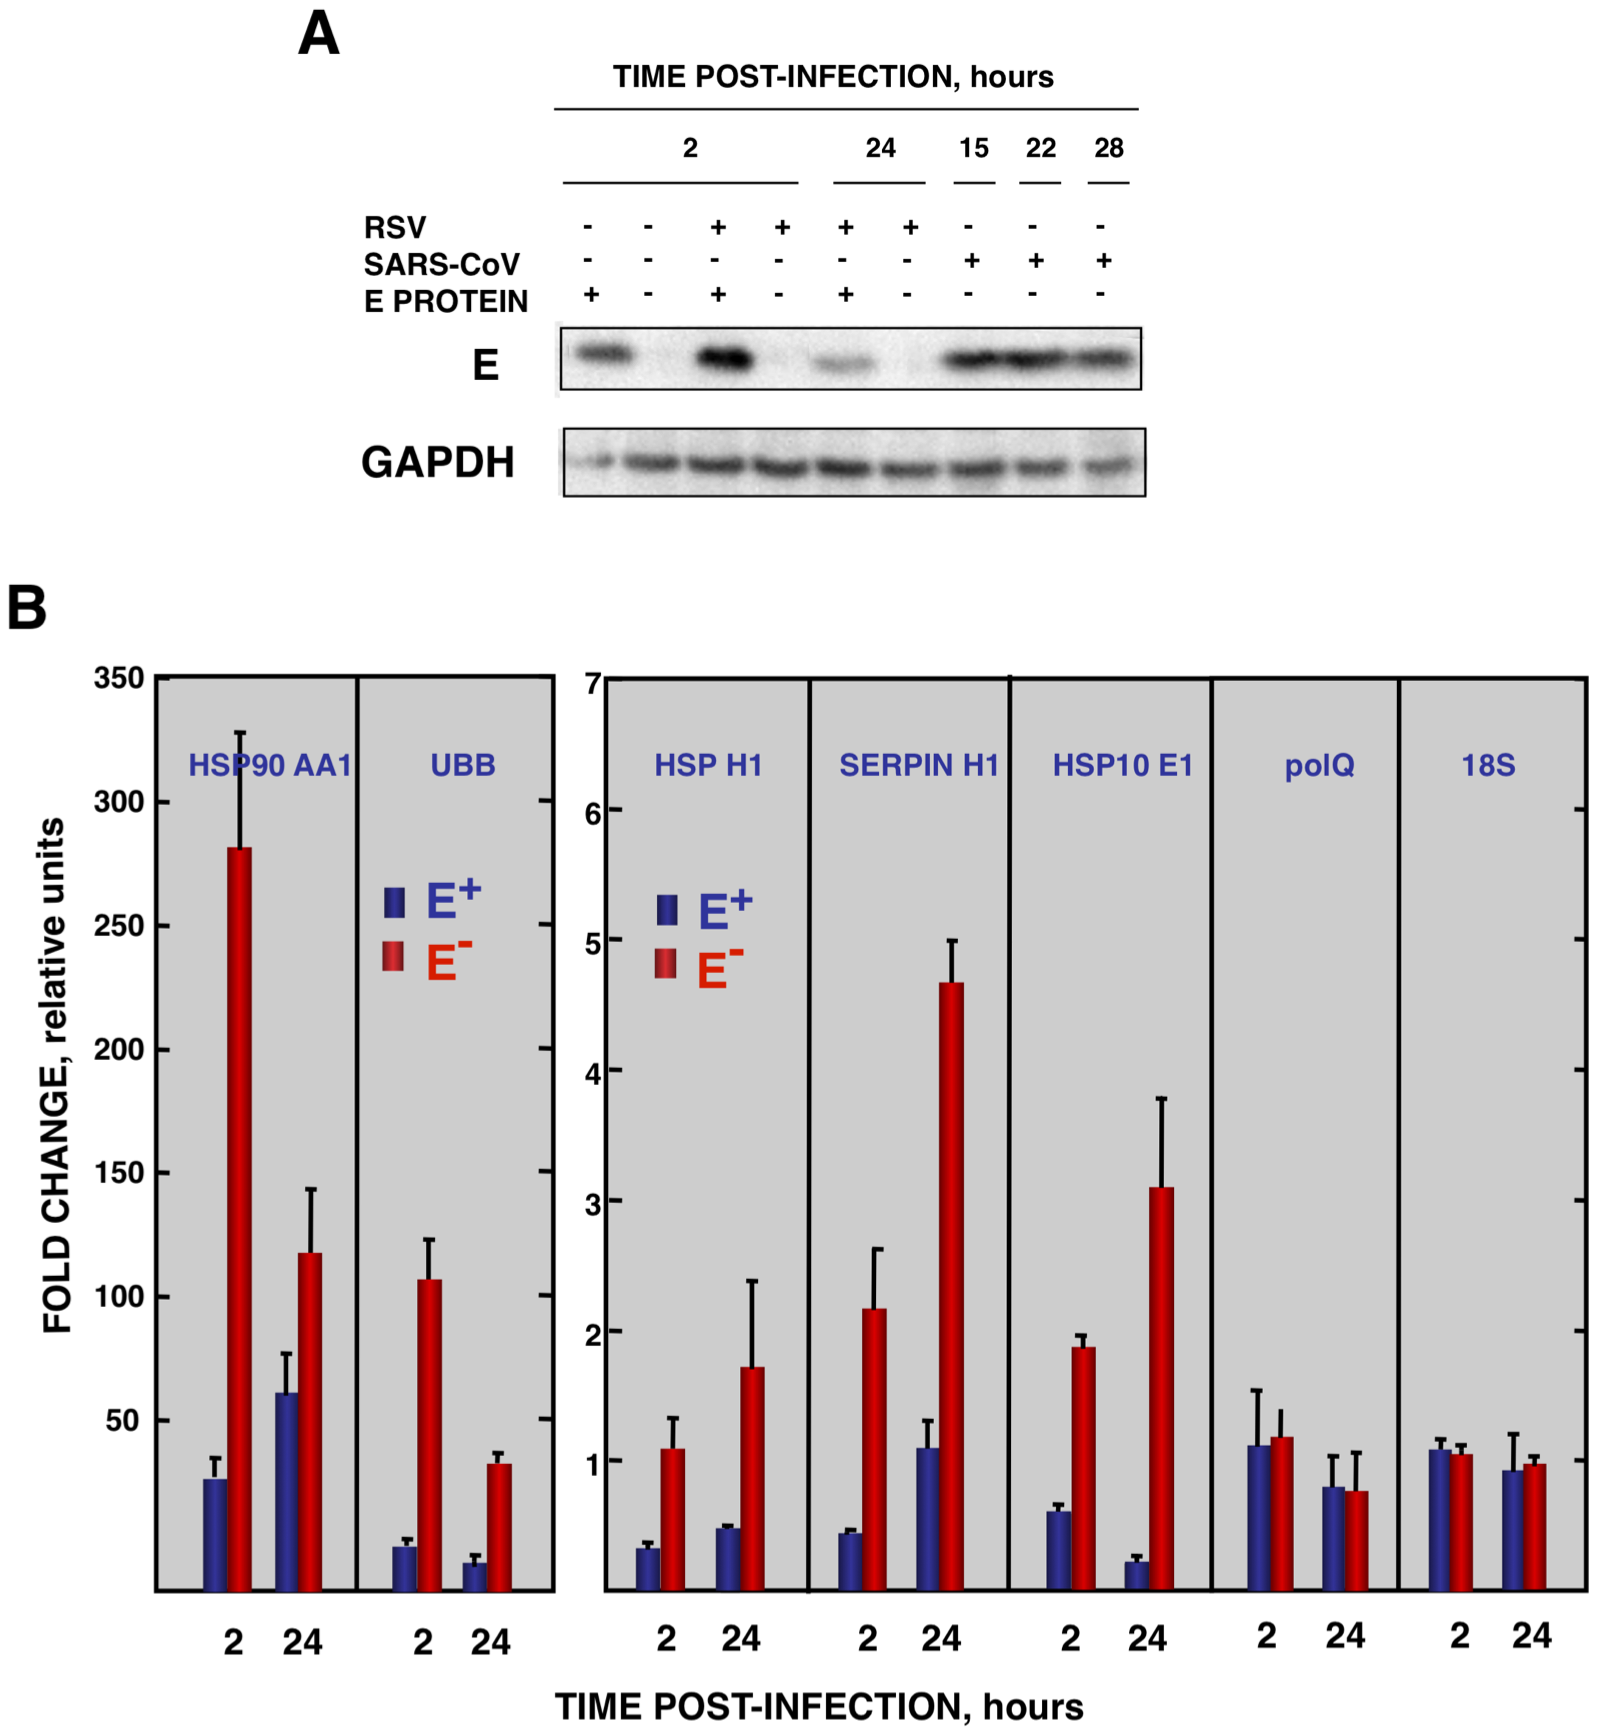 Effect of SARS-CoV E protein on the stress induced by RSV infection.